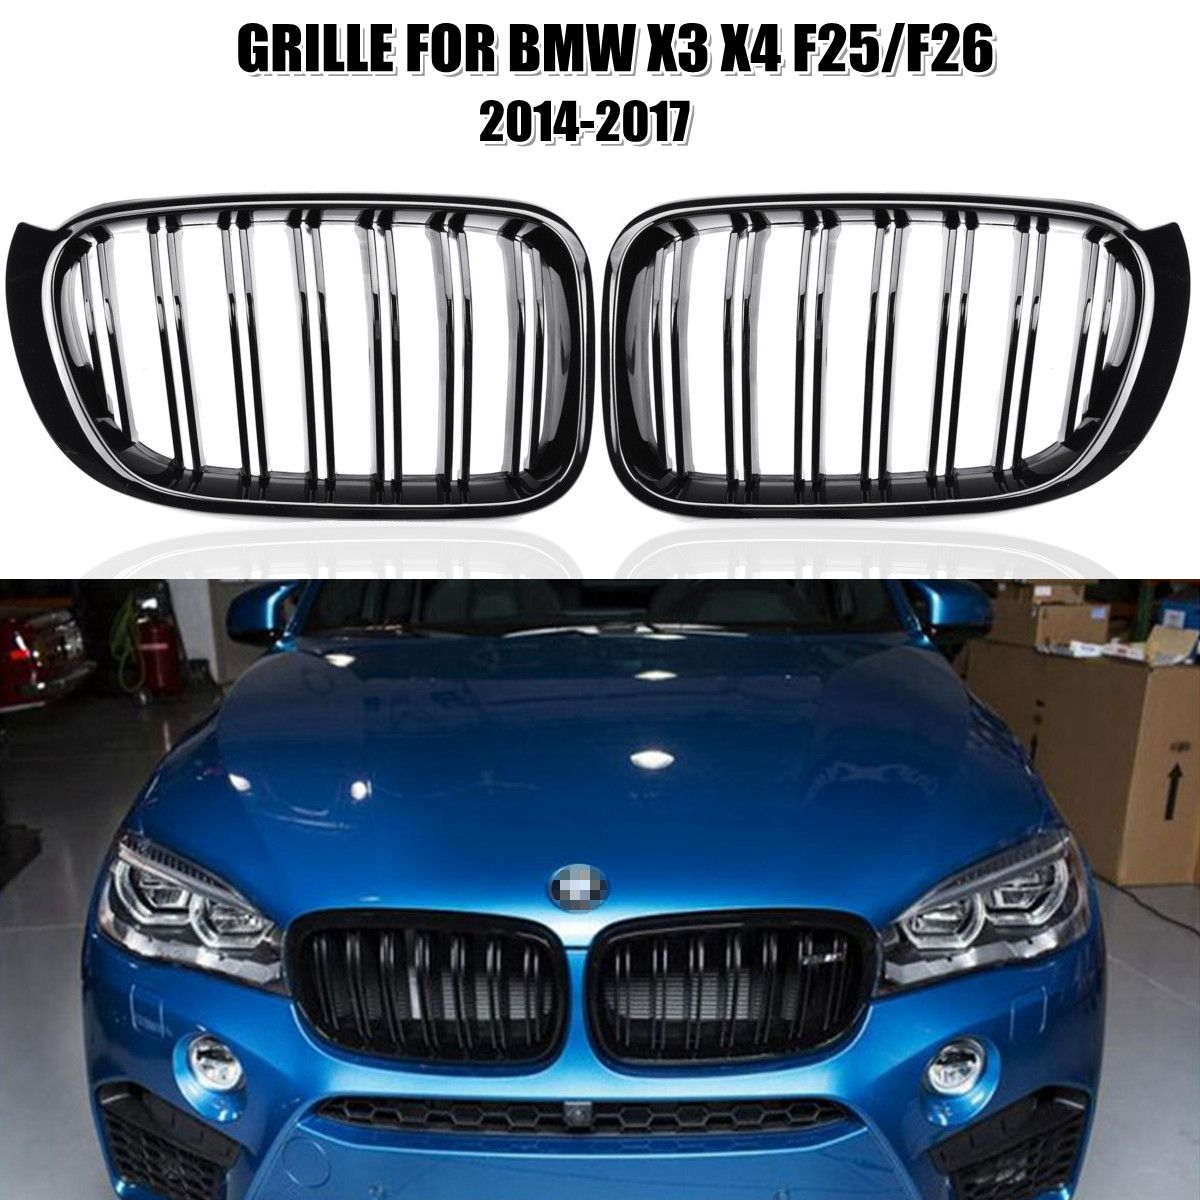 2Pcs M Style Car Front Kidney Grill Grille Gloss Black for BMW X3 X4 F25/F26 2014 2015 2016 20172Pcs M Style Car Front Kidney Grill Grille Gloss Black for BMW X3 X4 F25/F26 2014 2015 2016 2017